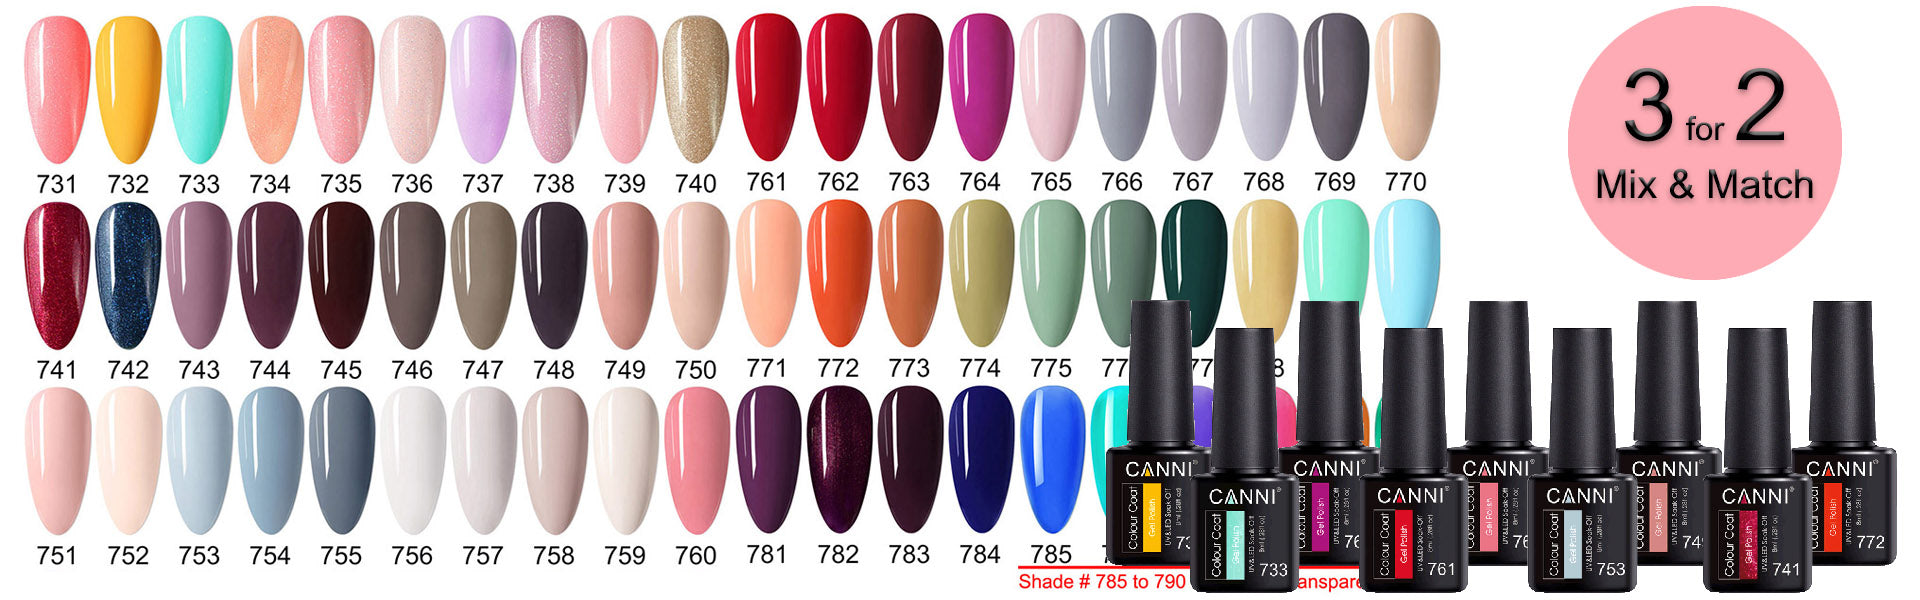 CANNI Lite 8ml UV LED Nail Gel Varnish 60 Colours